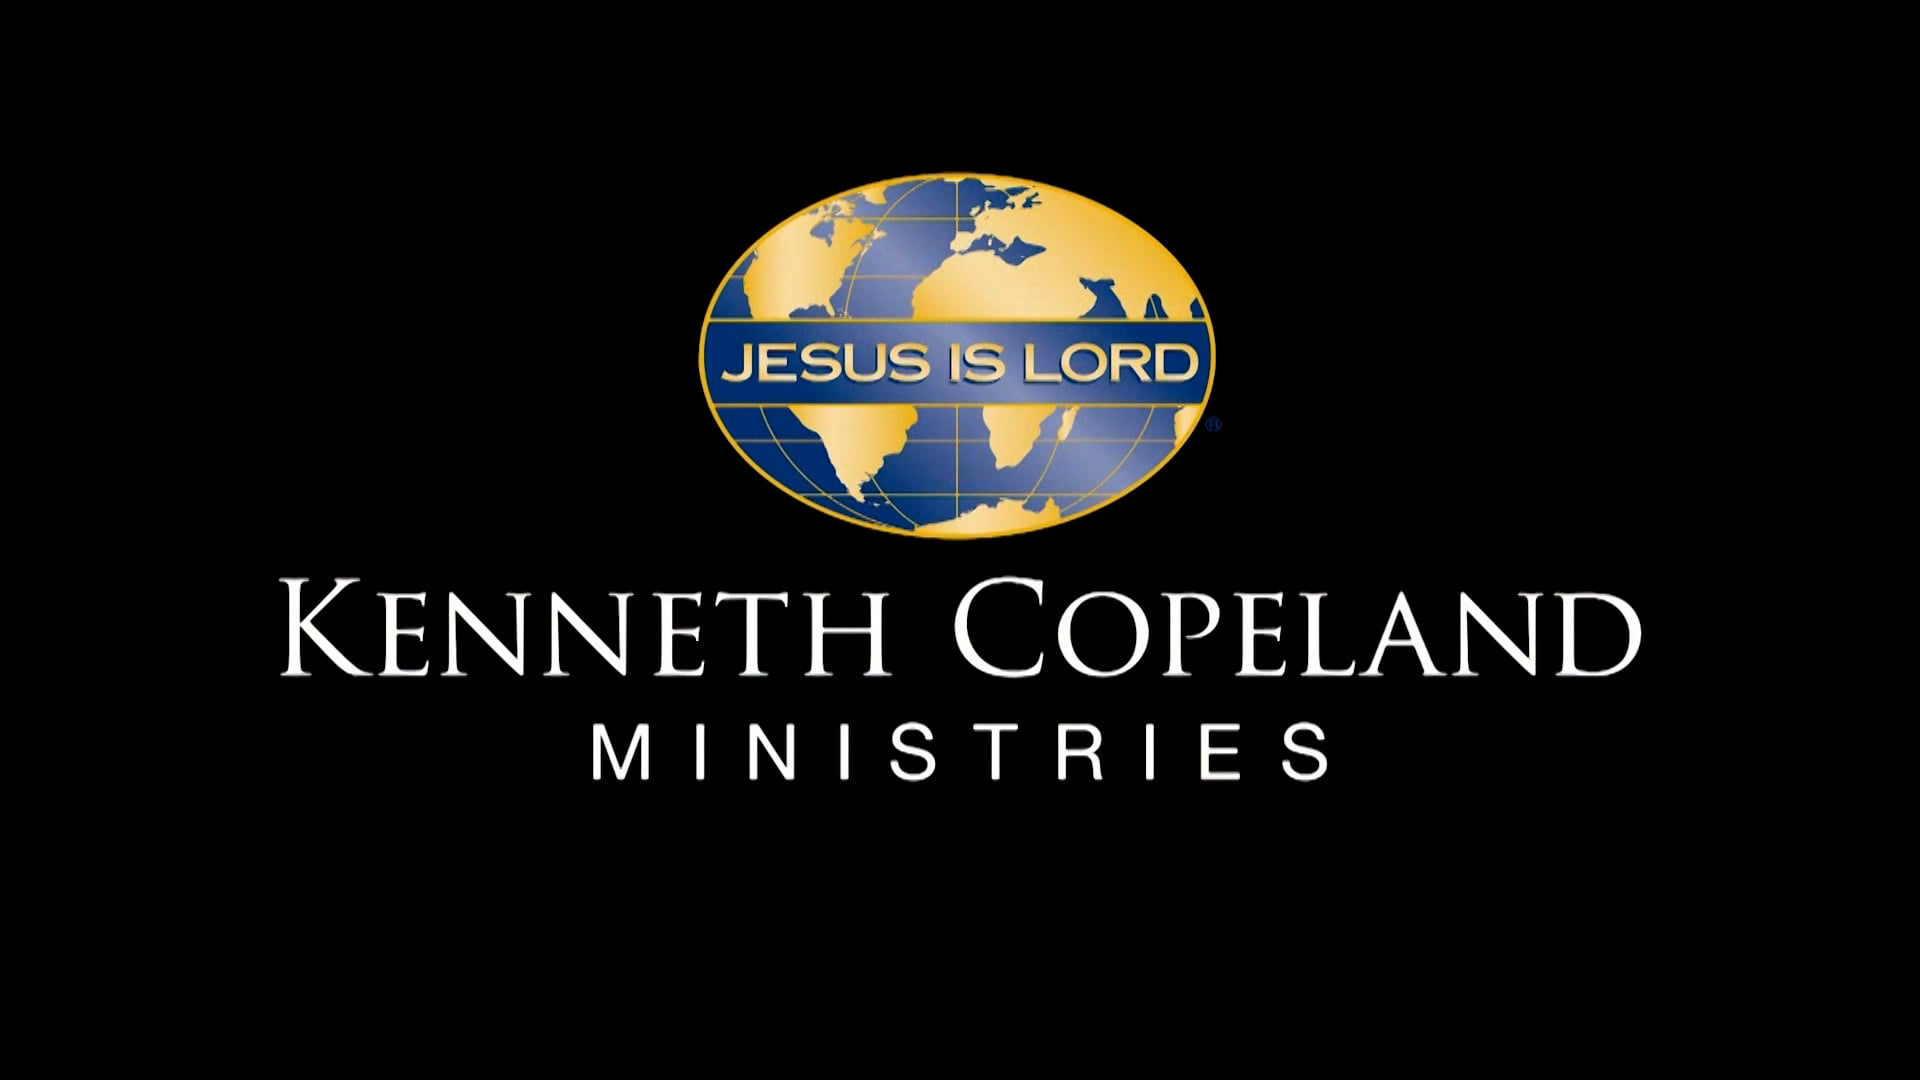 """Hear Kenneth Copeland, at the 2021 Detroit Victory Campaign, teach how to walk in the same anointings as those you are partnering with in ministry. The church at Philippi partnered with the Apostle Paul and shared in his anointings and graces (Phil. 1:17). Learn what """"covenant partnership"""" is all about."""